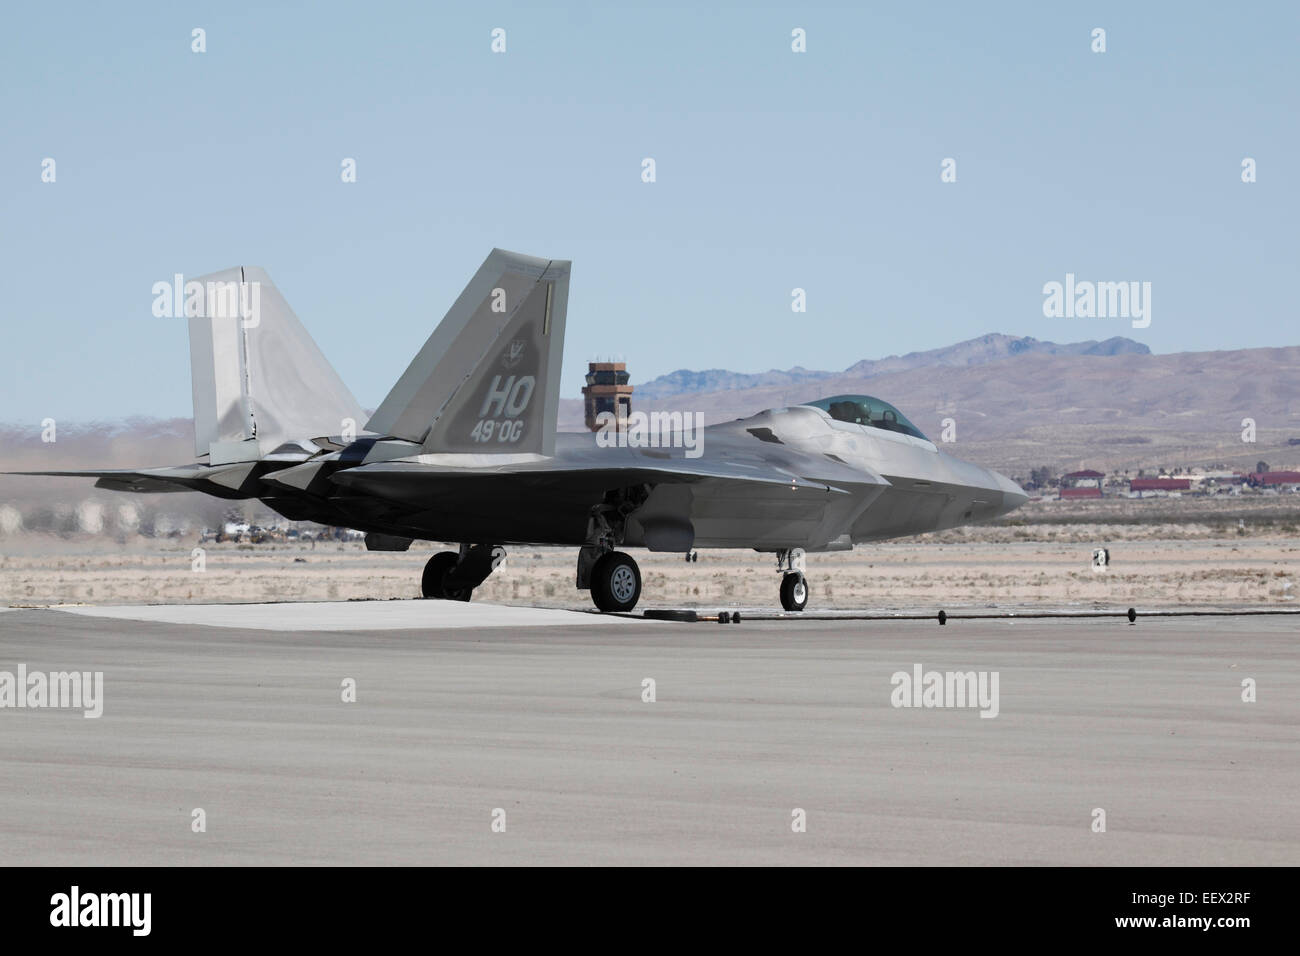 an F-22 fighter jet of the United States Air Force prepares to take off Stock Photo